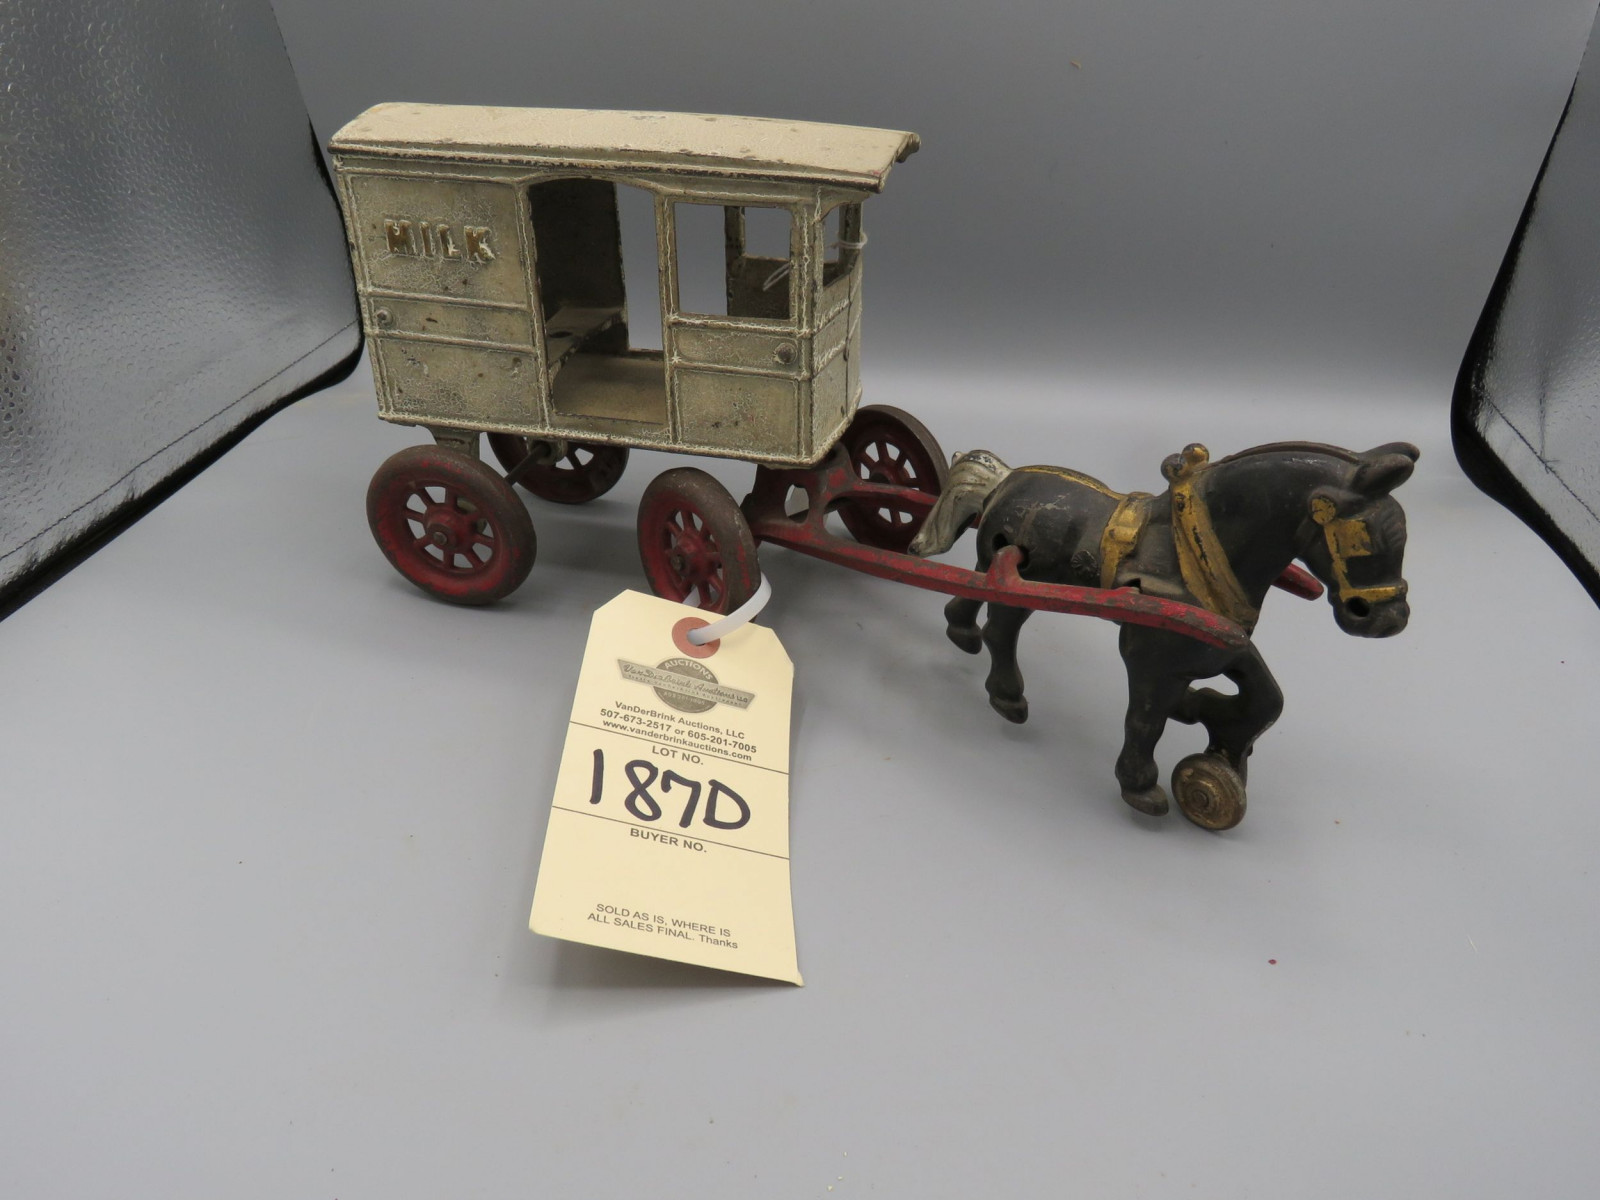 Vintage Cast Iron Milk Cart with Horse Approx. 10 inches - Image 1